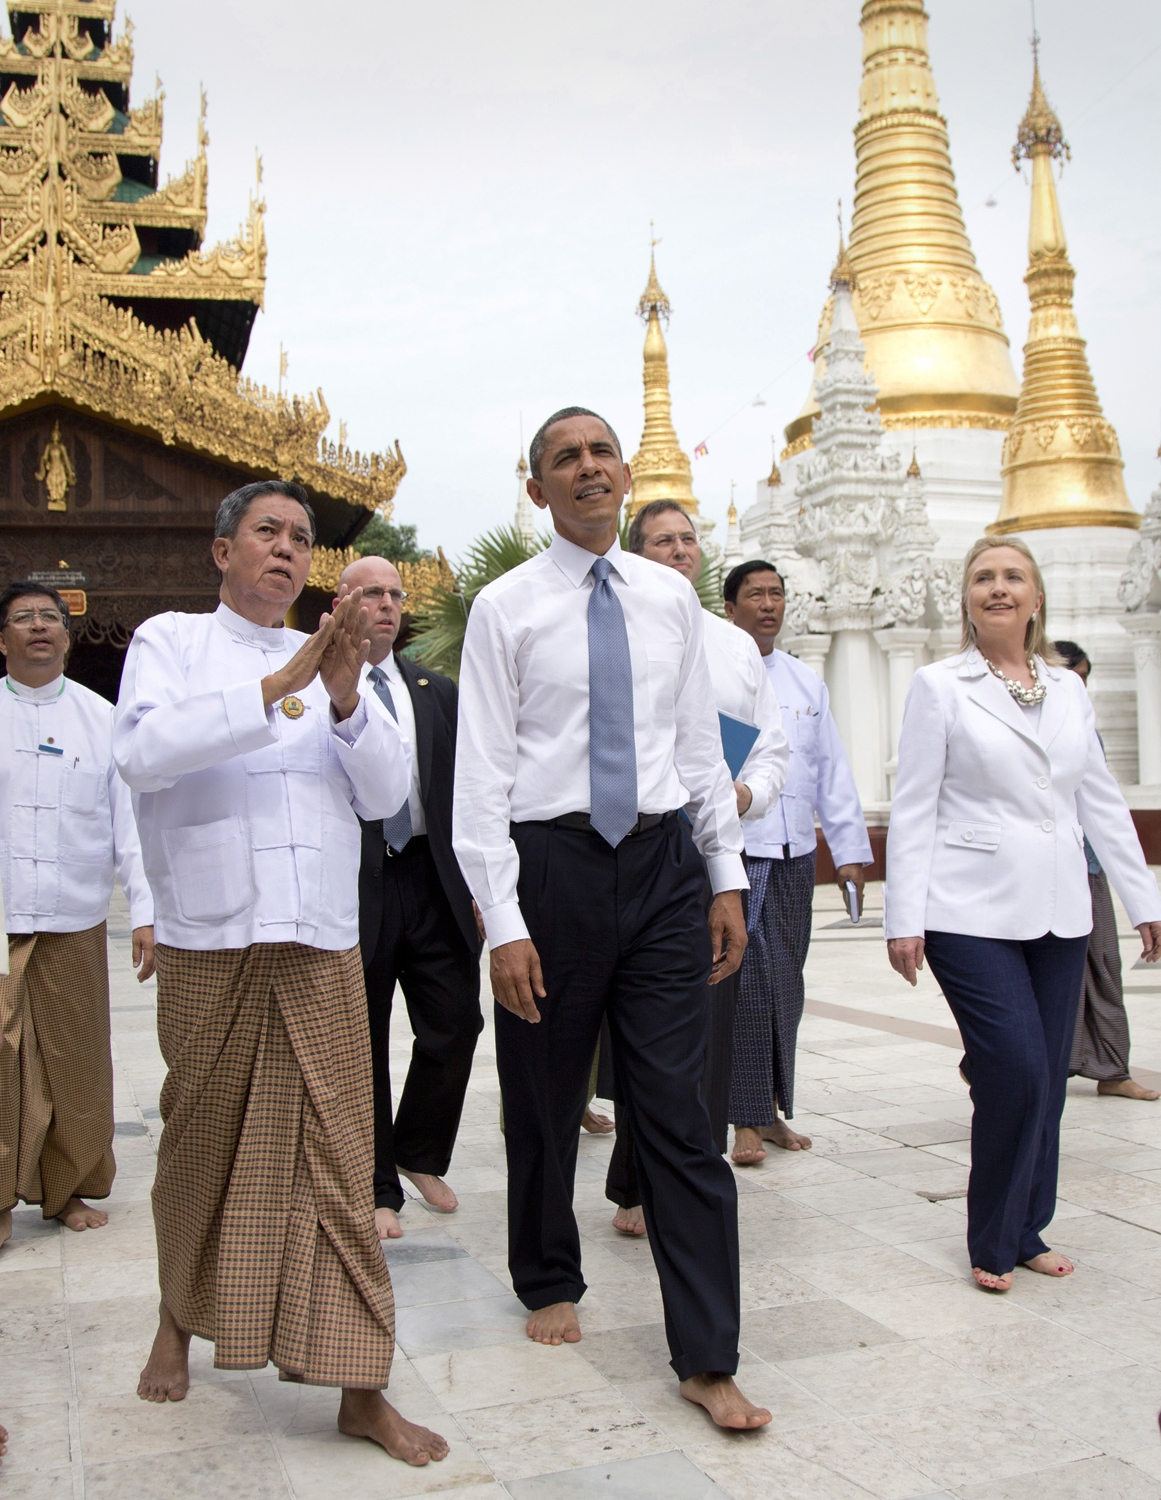 Obama Wins Popularity Contest in Myanmar this Monday от Marinara за 21 nov 2012